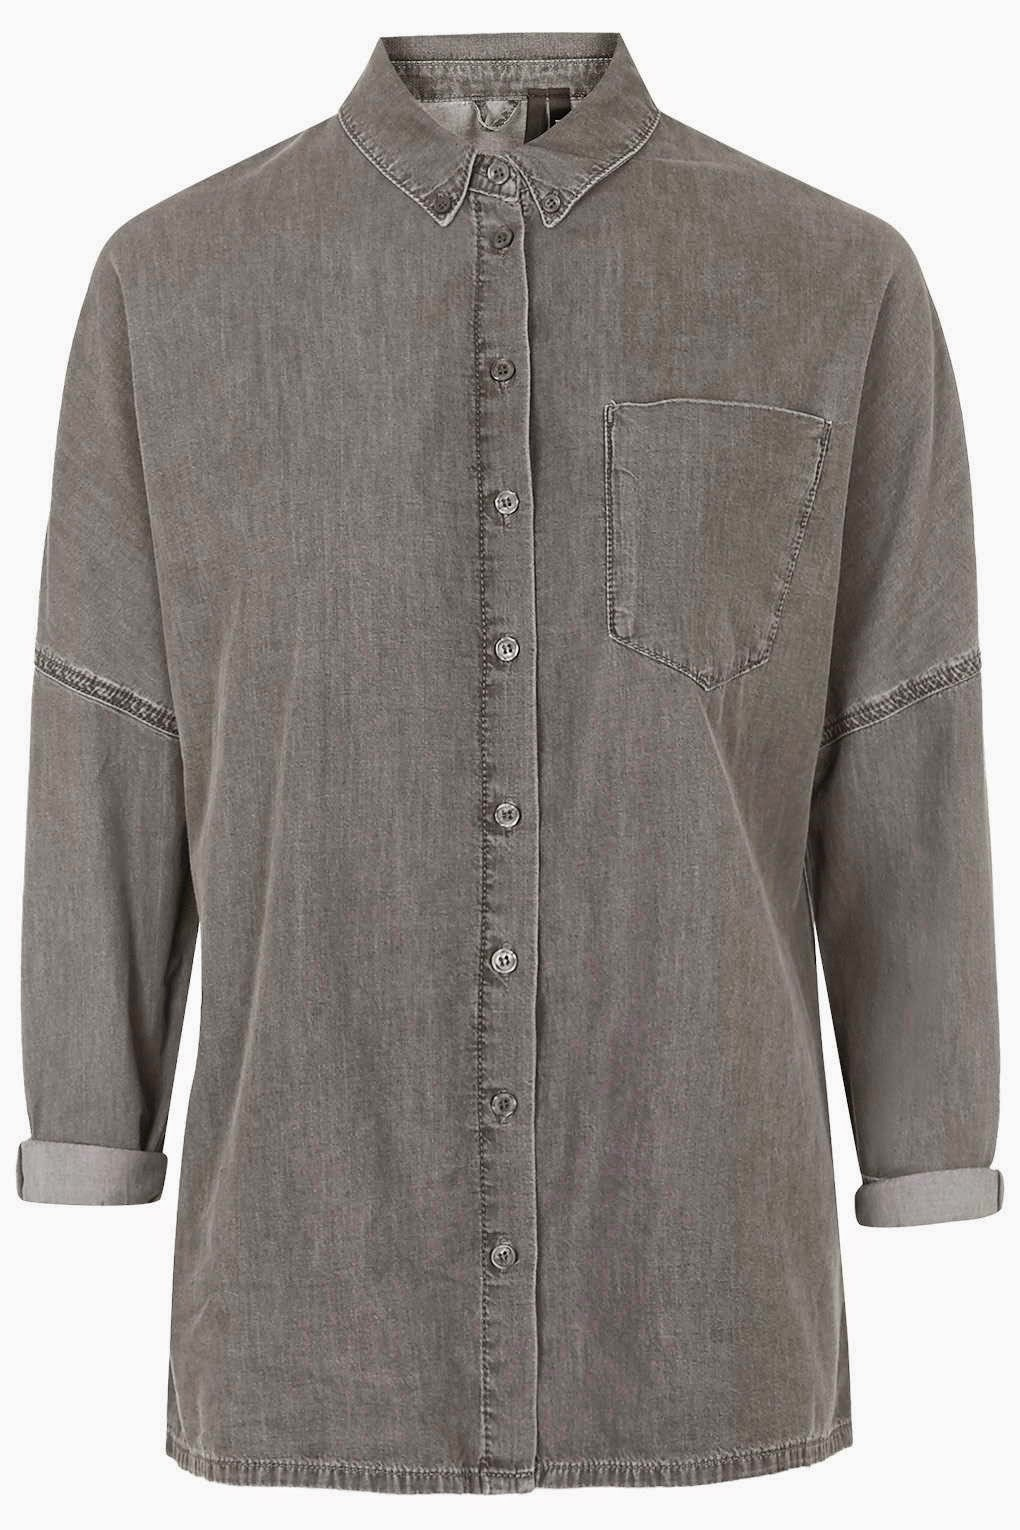 grey denim shirt ladies,